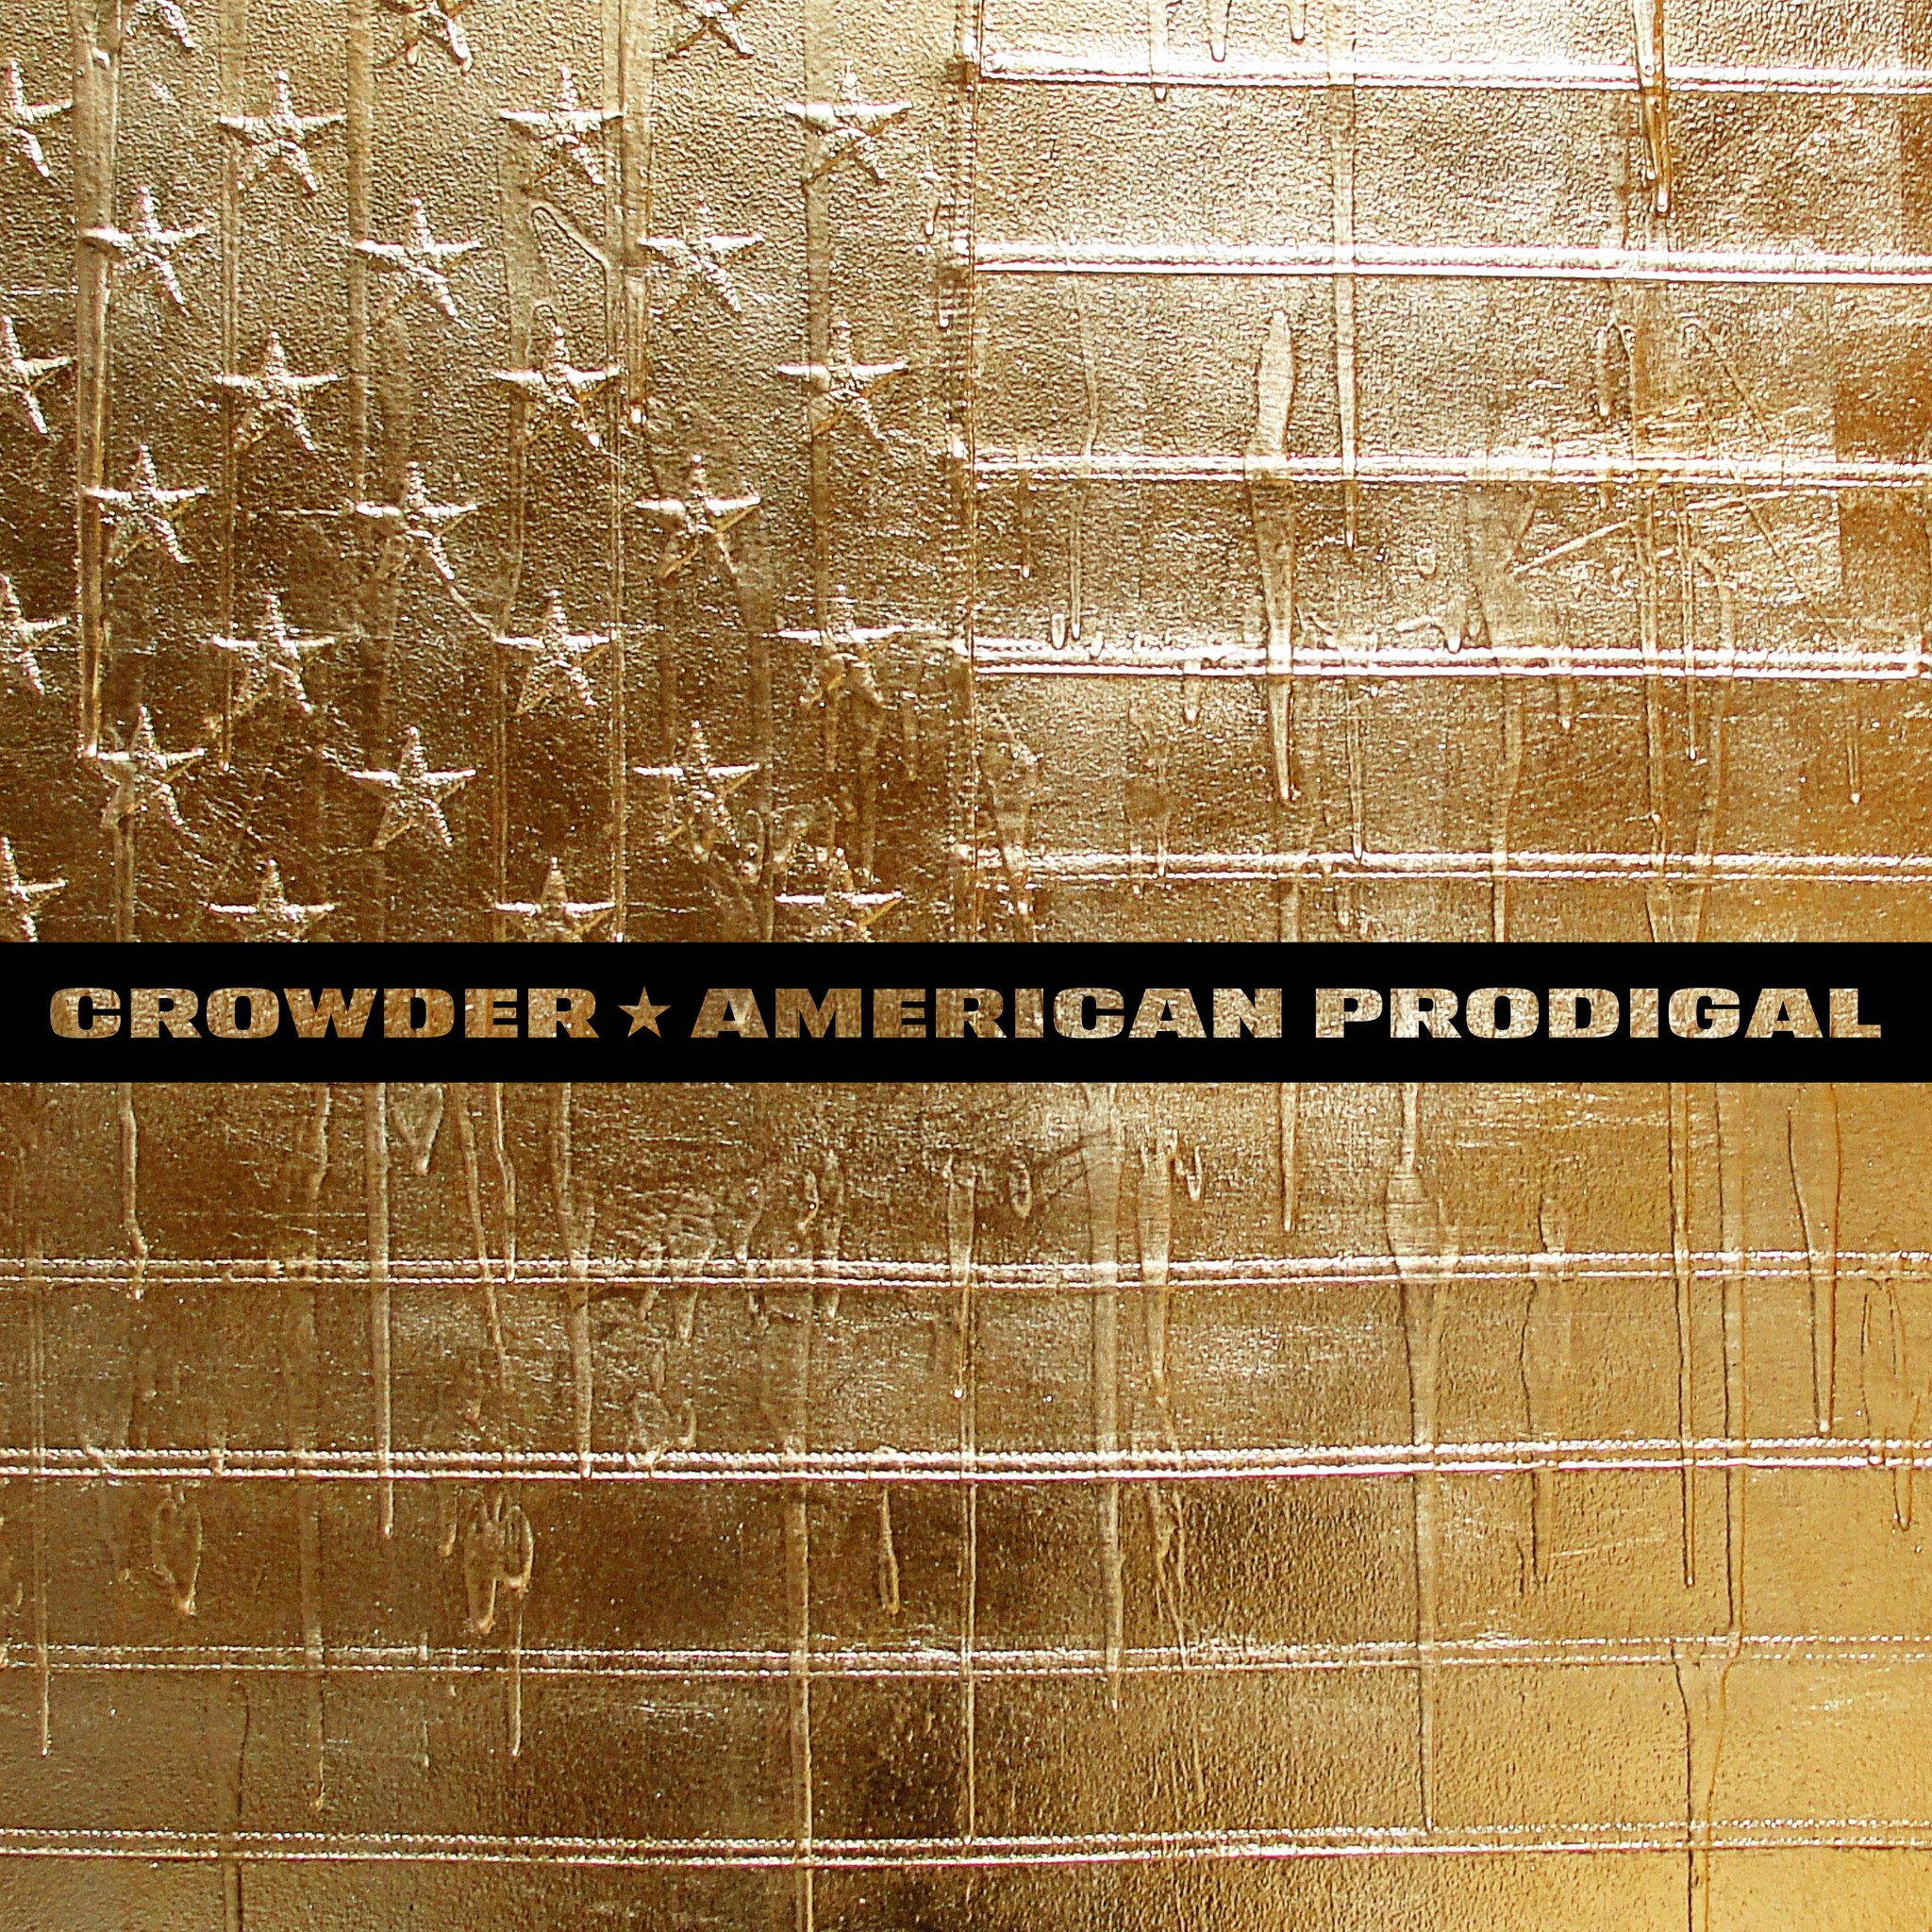 Crowder: American Prodigal